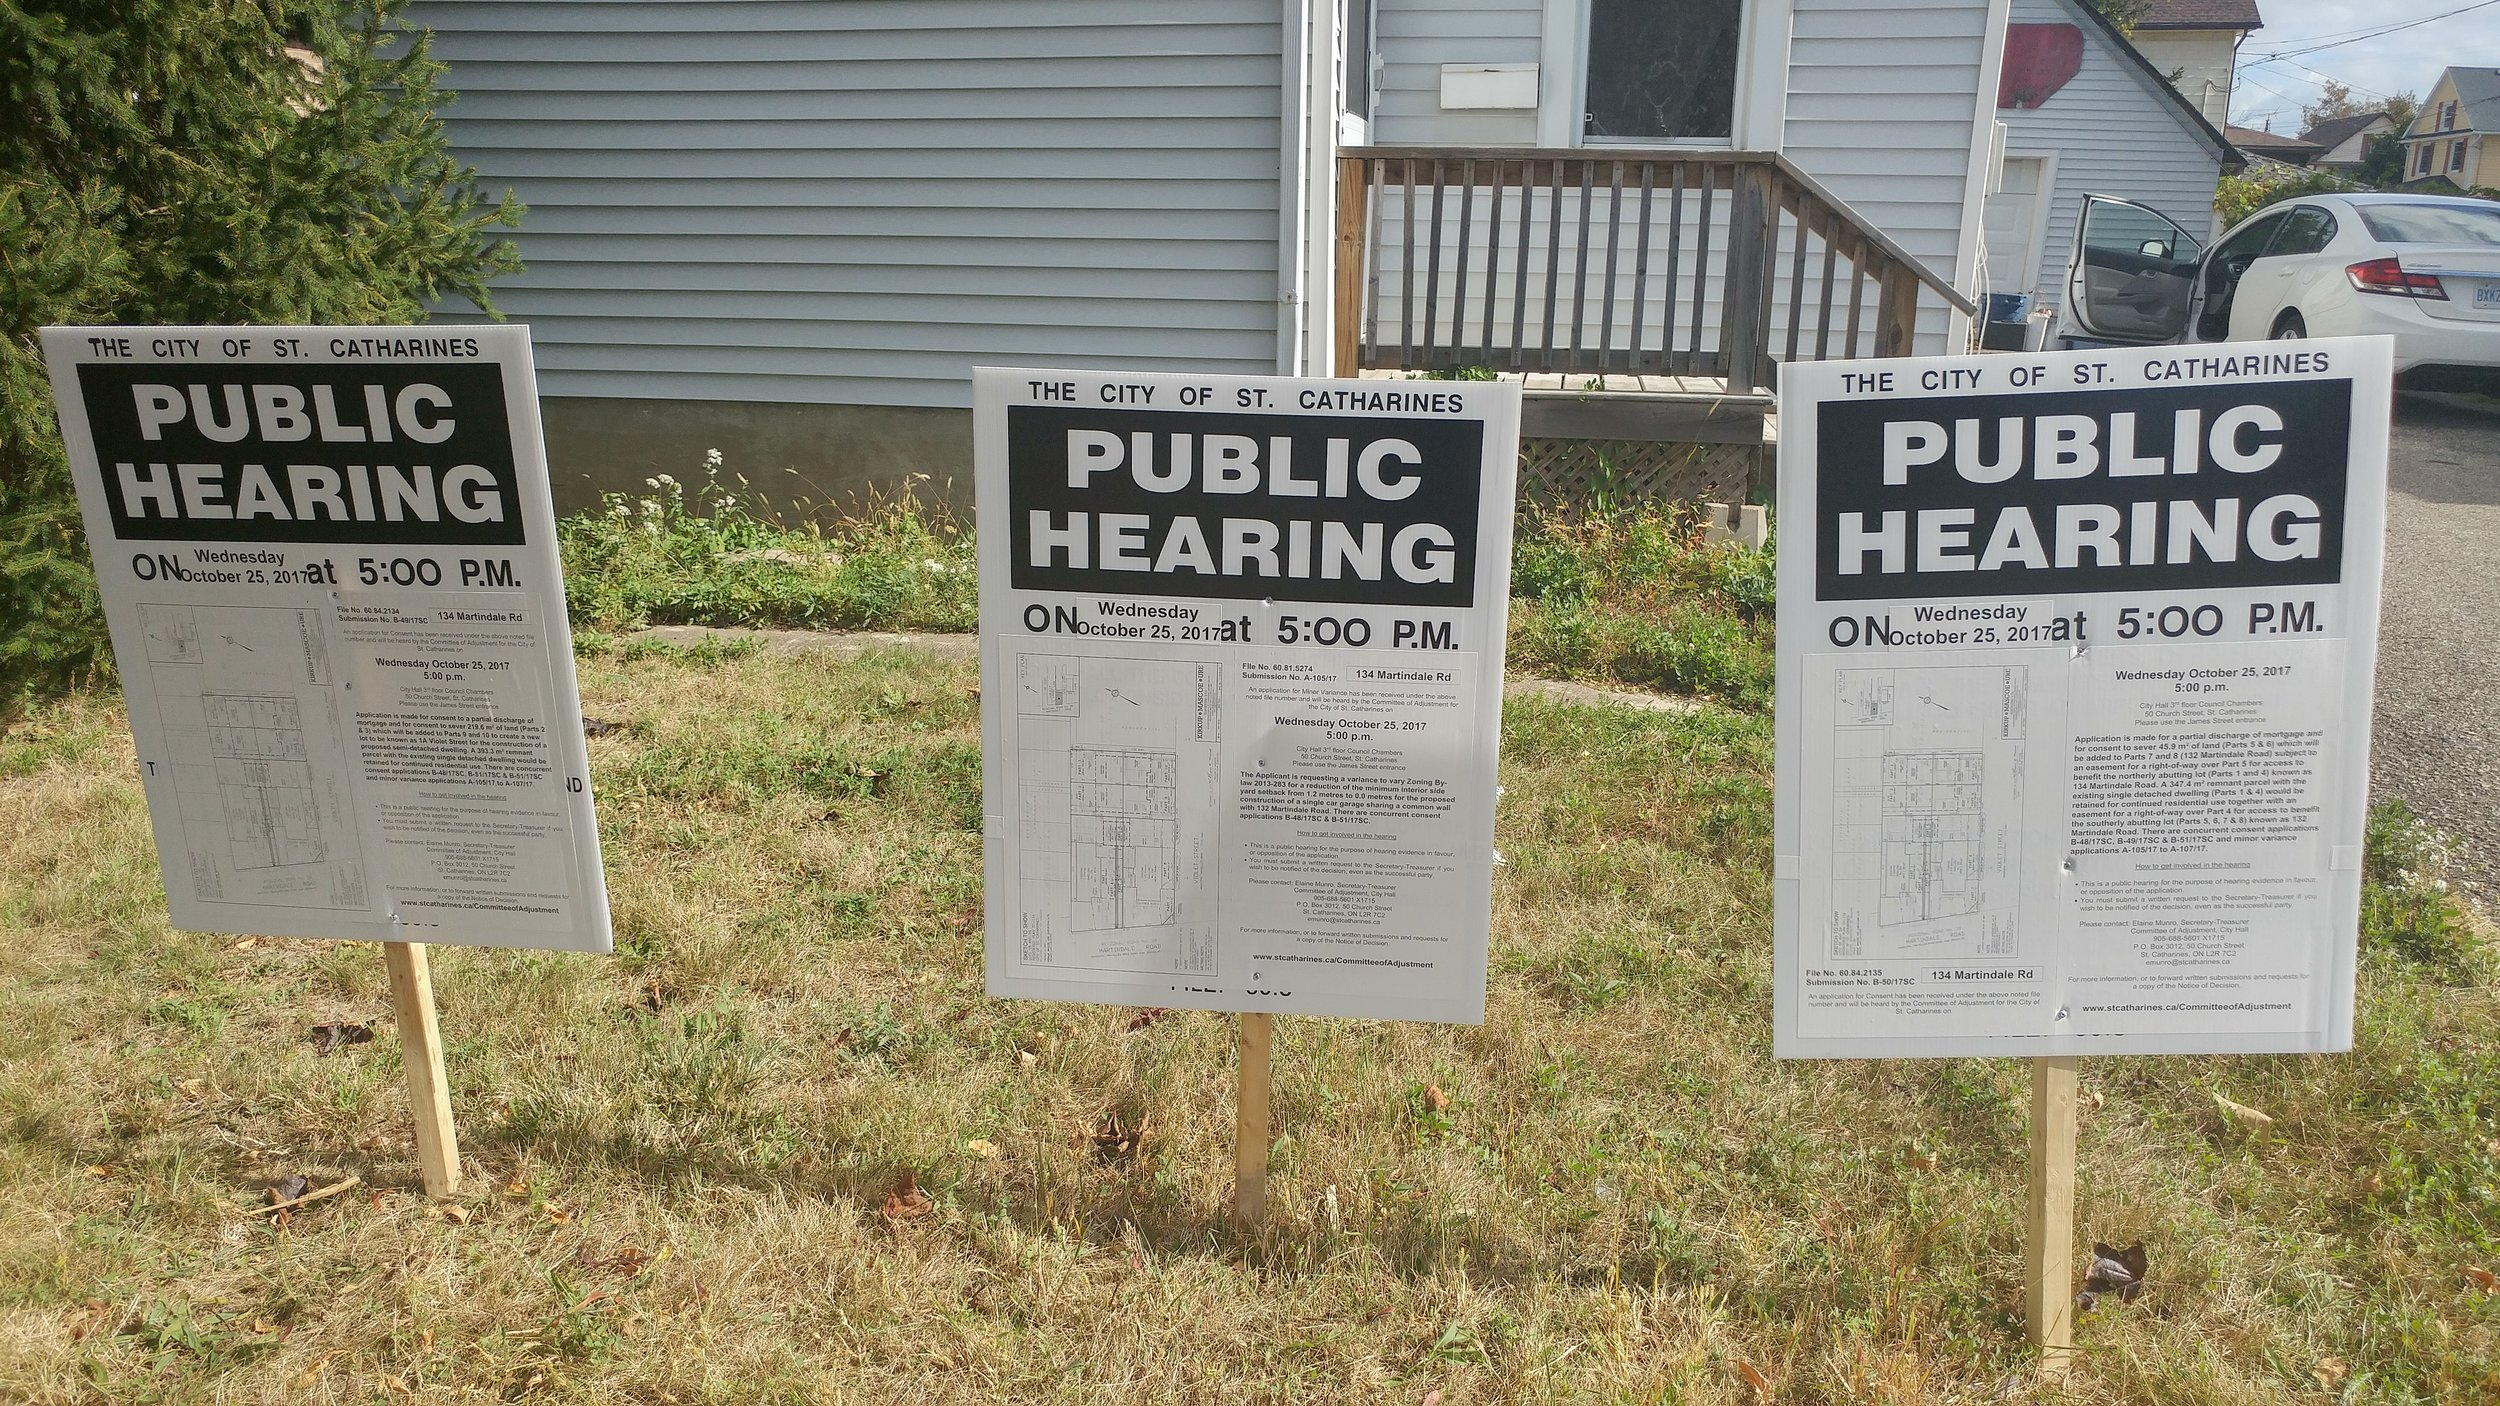 There was nothing subtle about these public hearing signs facing the main street. Fortunately there were no neighbours with torches and pitchforks